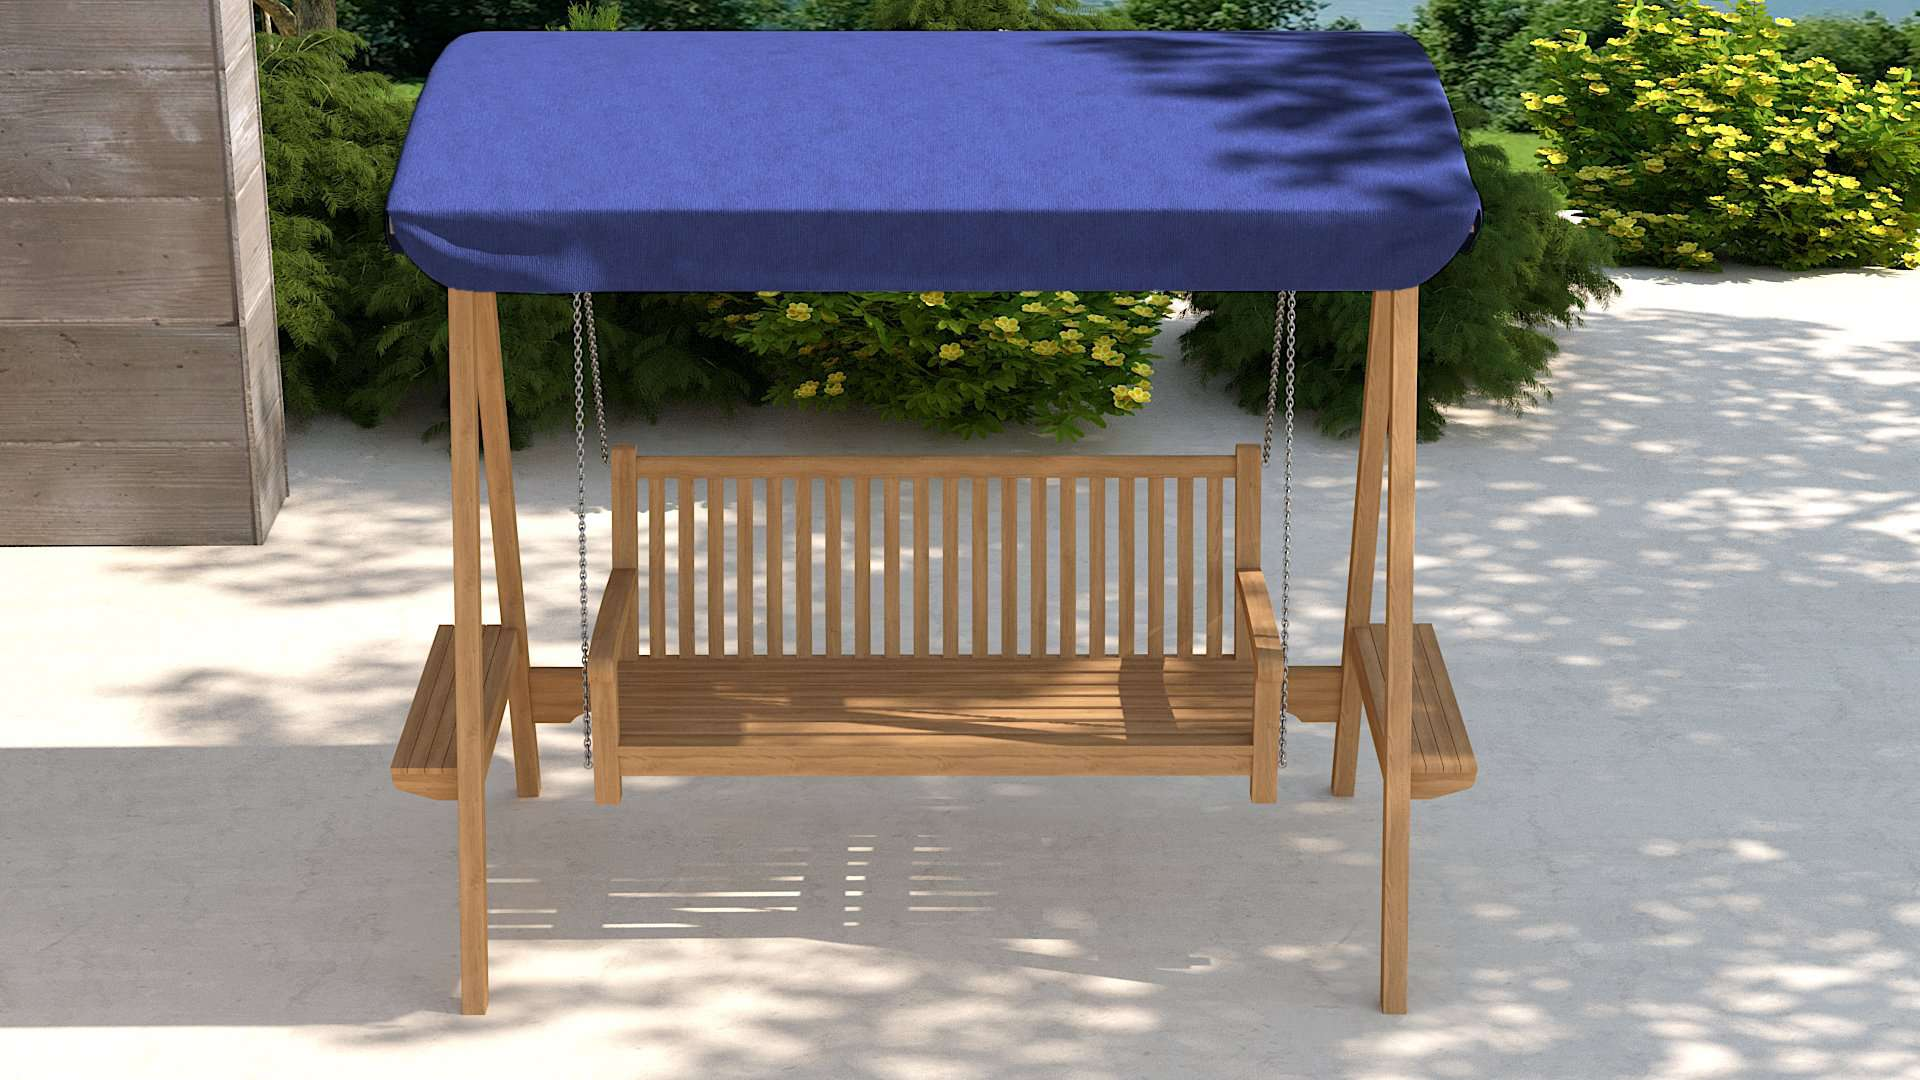 Teak Swing Seat - Blue Canopy  - Chic Teak® | Luxury Teak Furniture